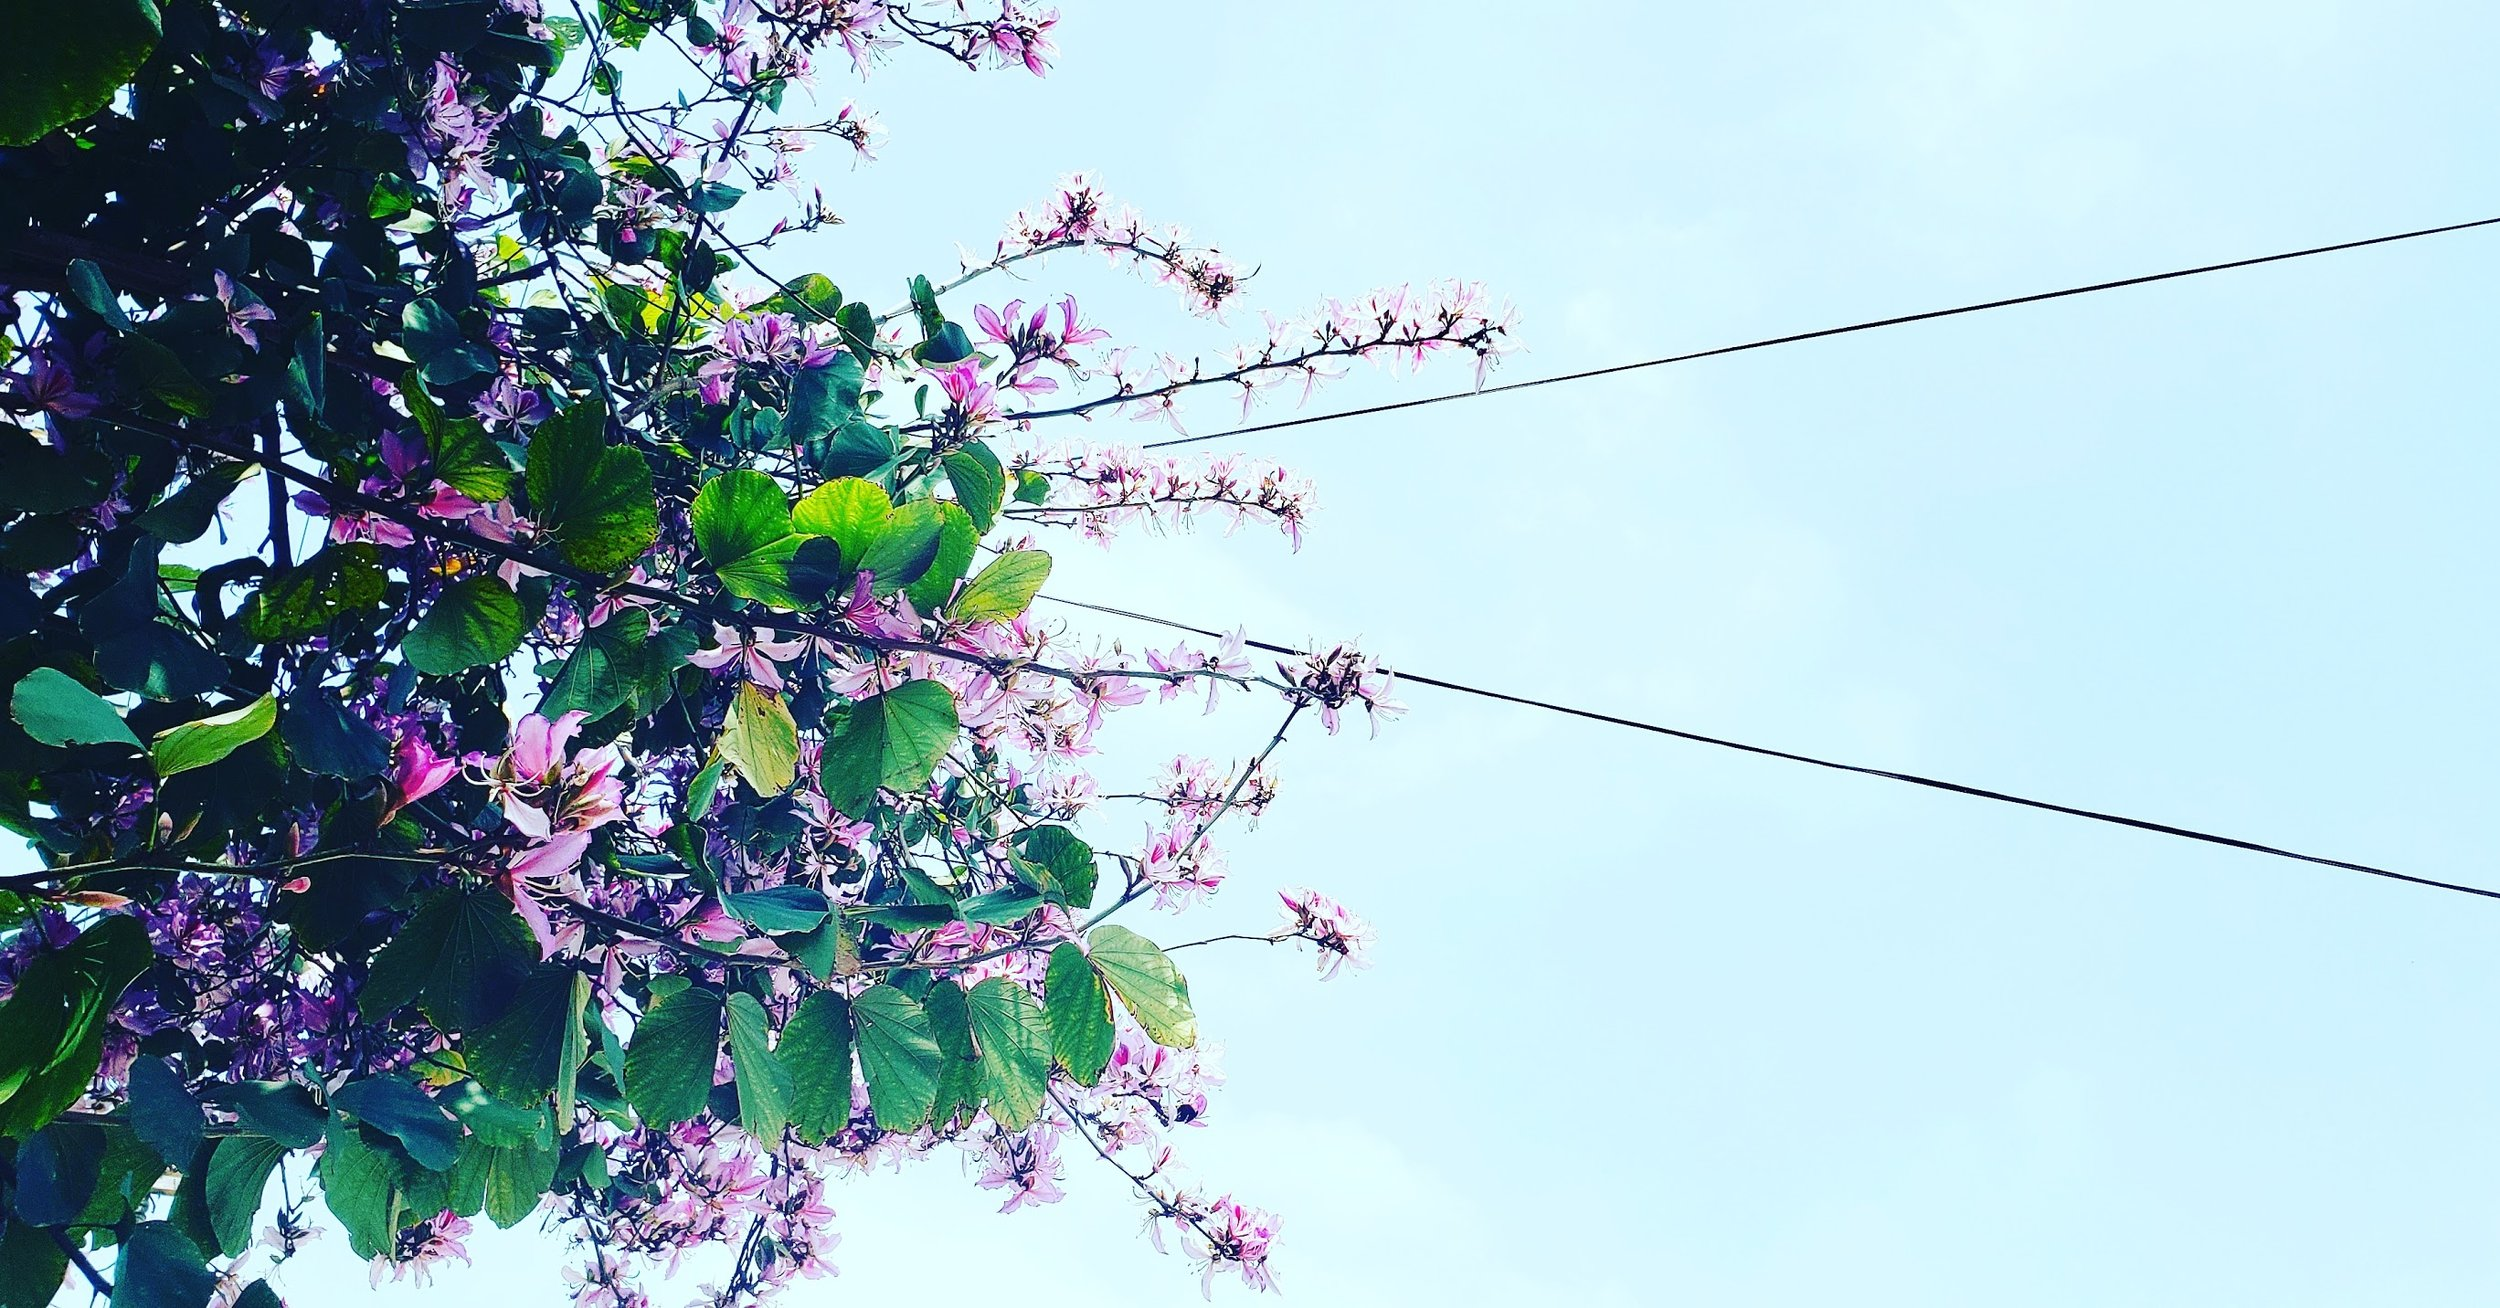 Minimalist flowers and sky photography